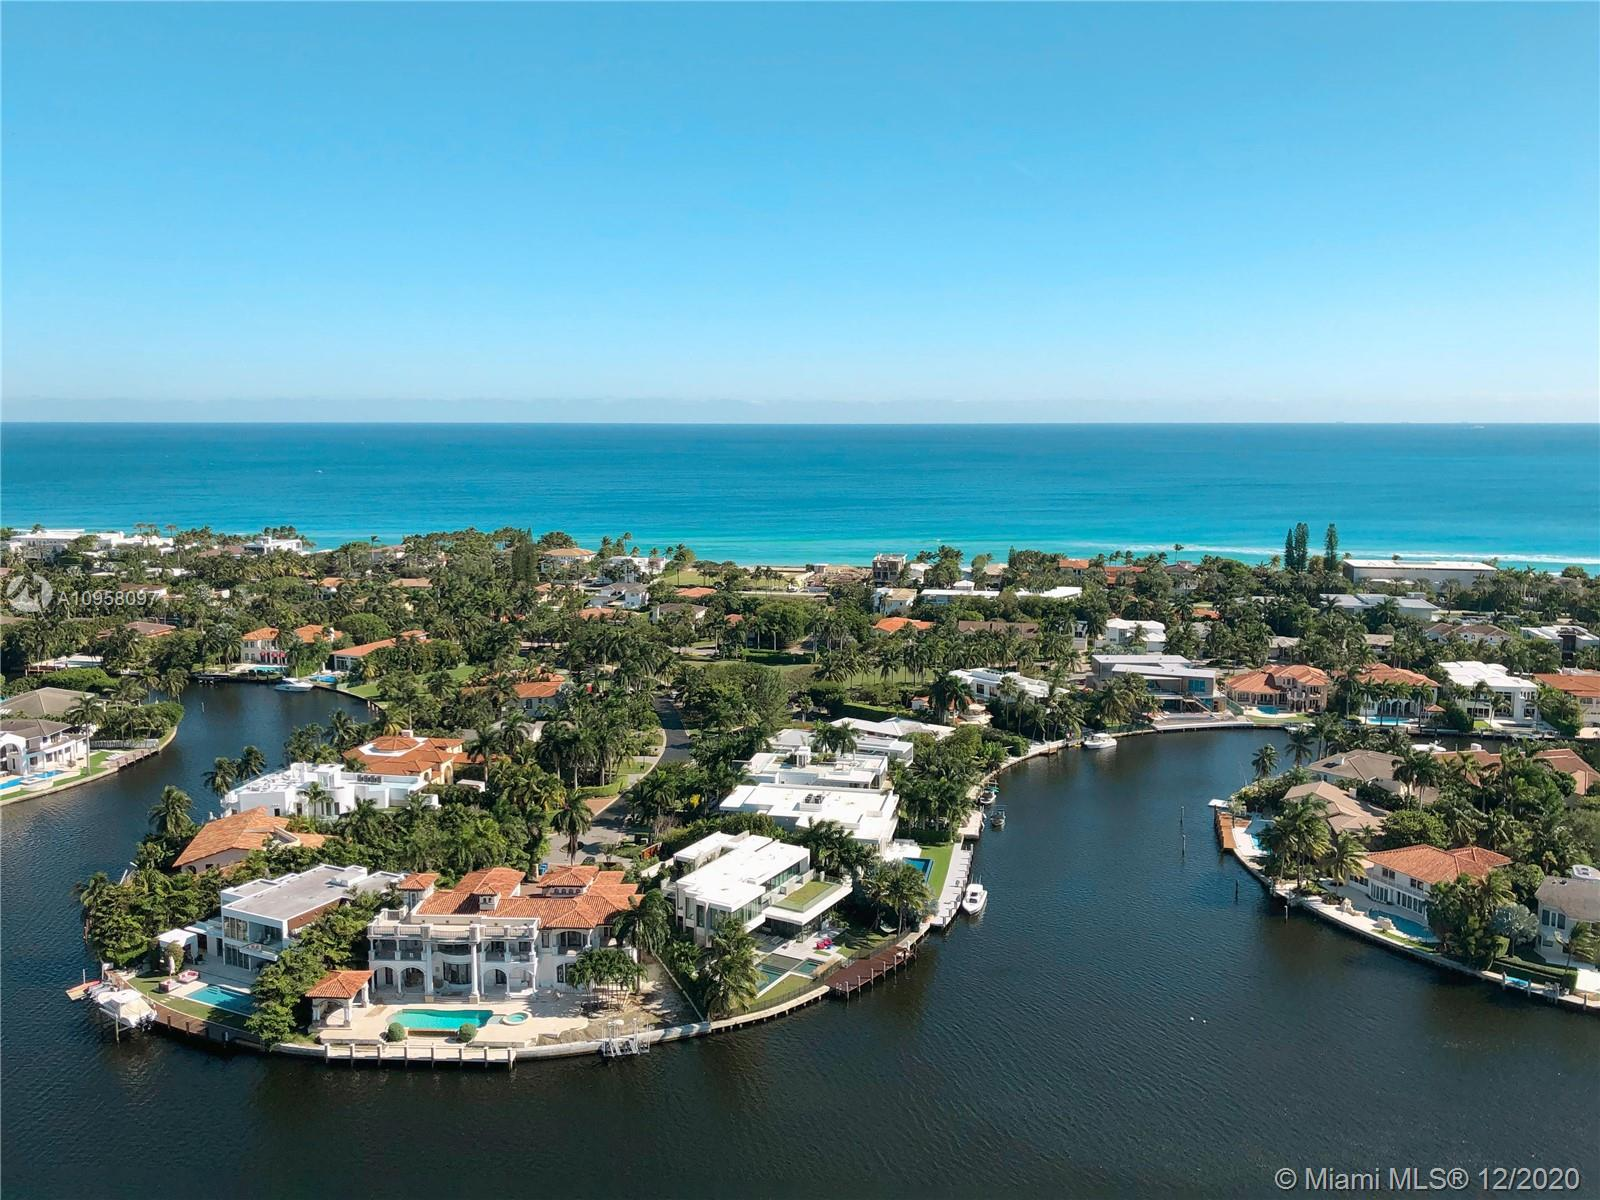 An authentic homely feeling on the first moment you walk into this unit. A private elevator to the 25th floor that opens to stunnings views of the Ocean and Intracoastal. Huge wrap around balcony connecting every room of the apartment.Two bedroom + den/office (which may be closed for a third bedroom) with two bathroomsin suite and social half bathroom.  One of the few units with an additional walking closet behind the master bathroom. Spacious laundry room with plenty of storage and direct access to the service elevator.Resort style building with state of the art amenities, including; sauna, steam room, 2 pools (morning and afternoon), recently updated gym, 2 tennis courts and more.  Two contiguous parking spaces assigned, free valet parking for all visitors and storage room.